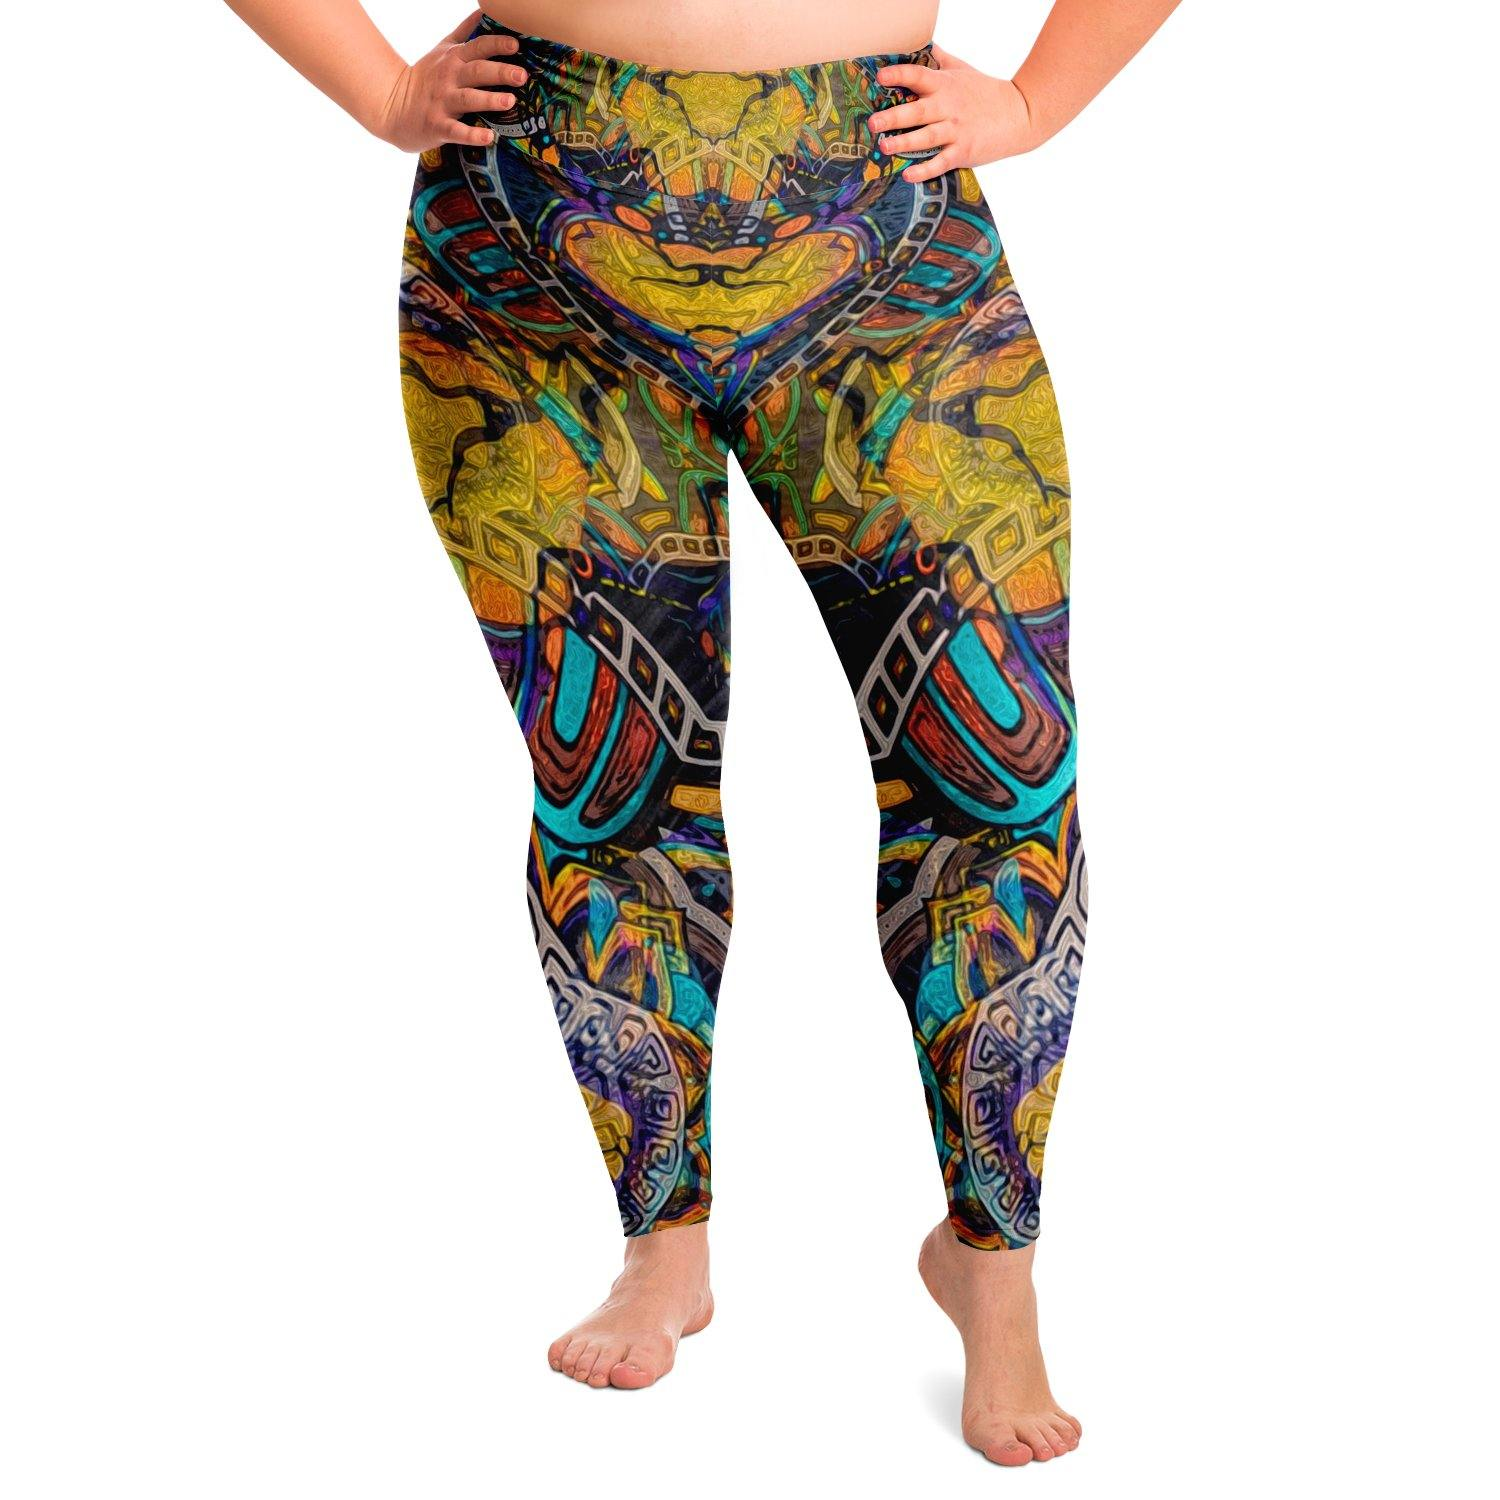 Sweet Dreams Premium Plus Size Yoga Leggings - Manifestie